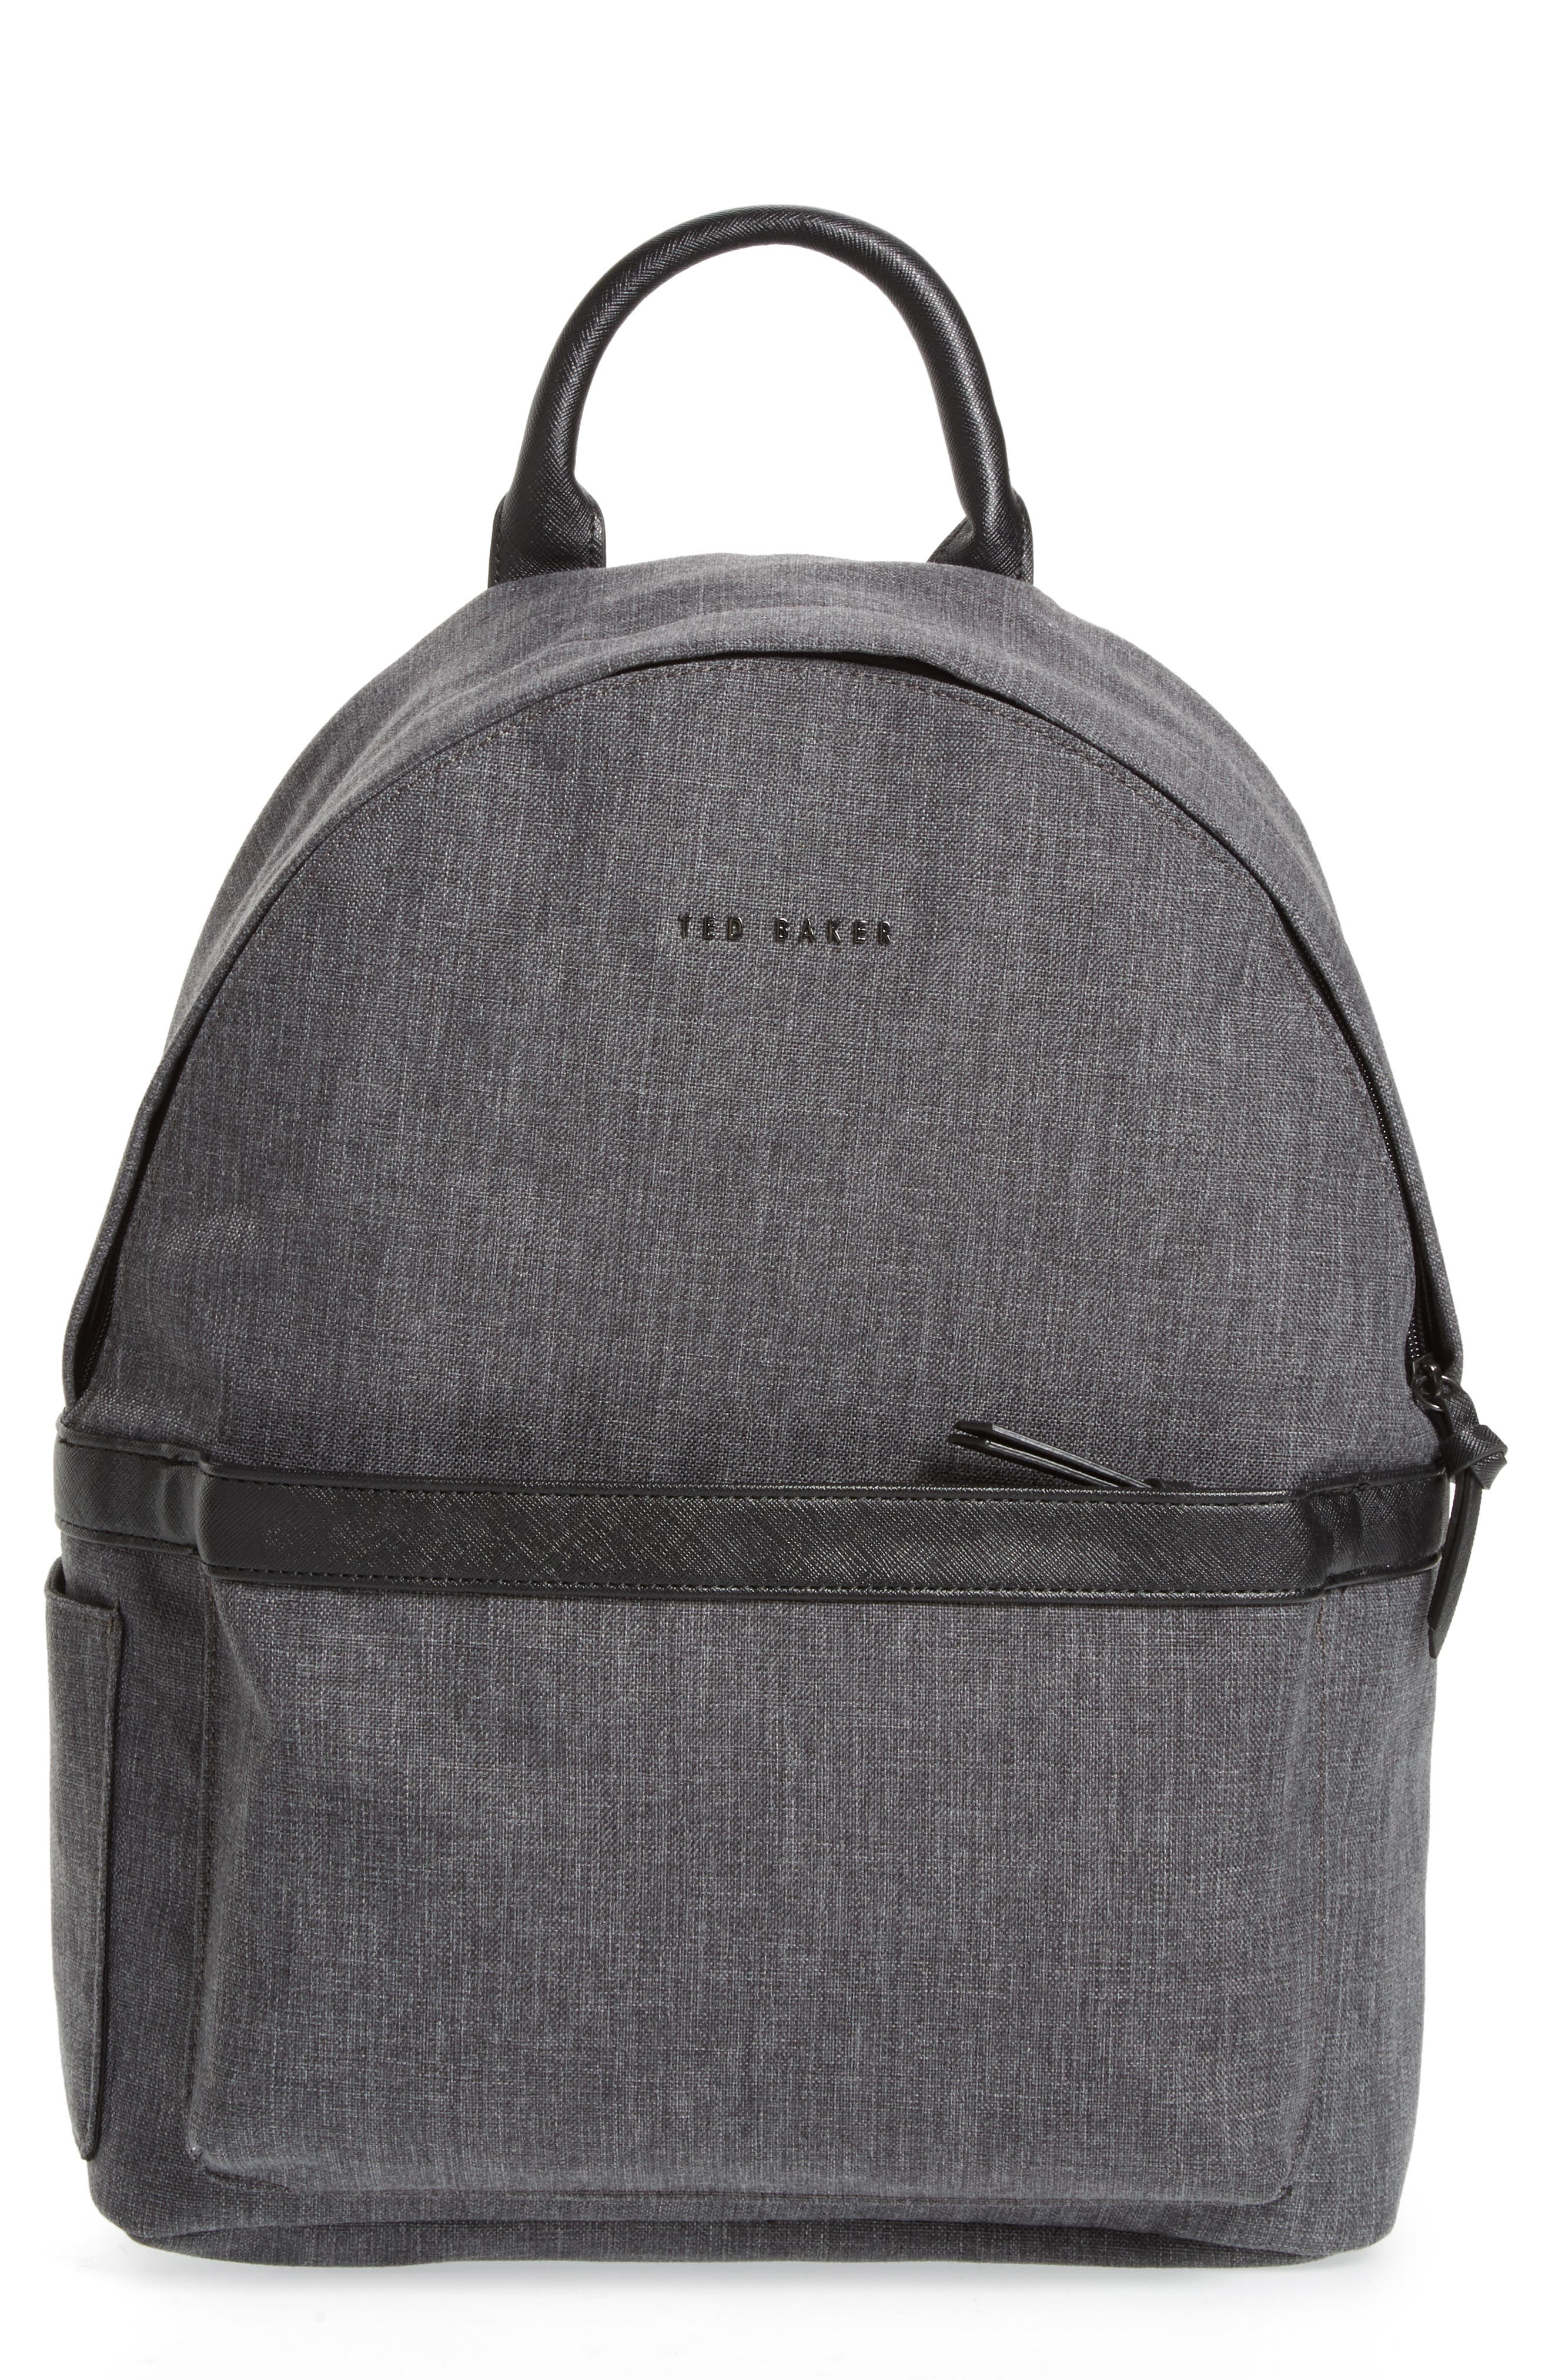 Lychee Backpack,                         Main,                         color, Charcoal